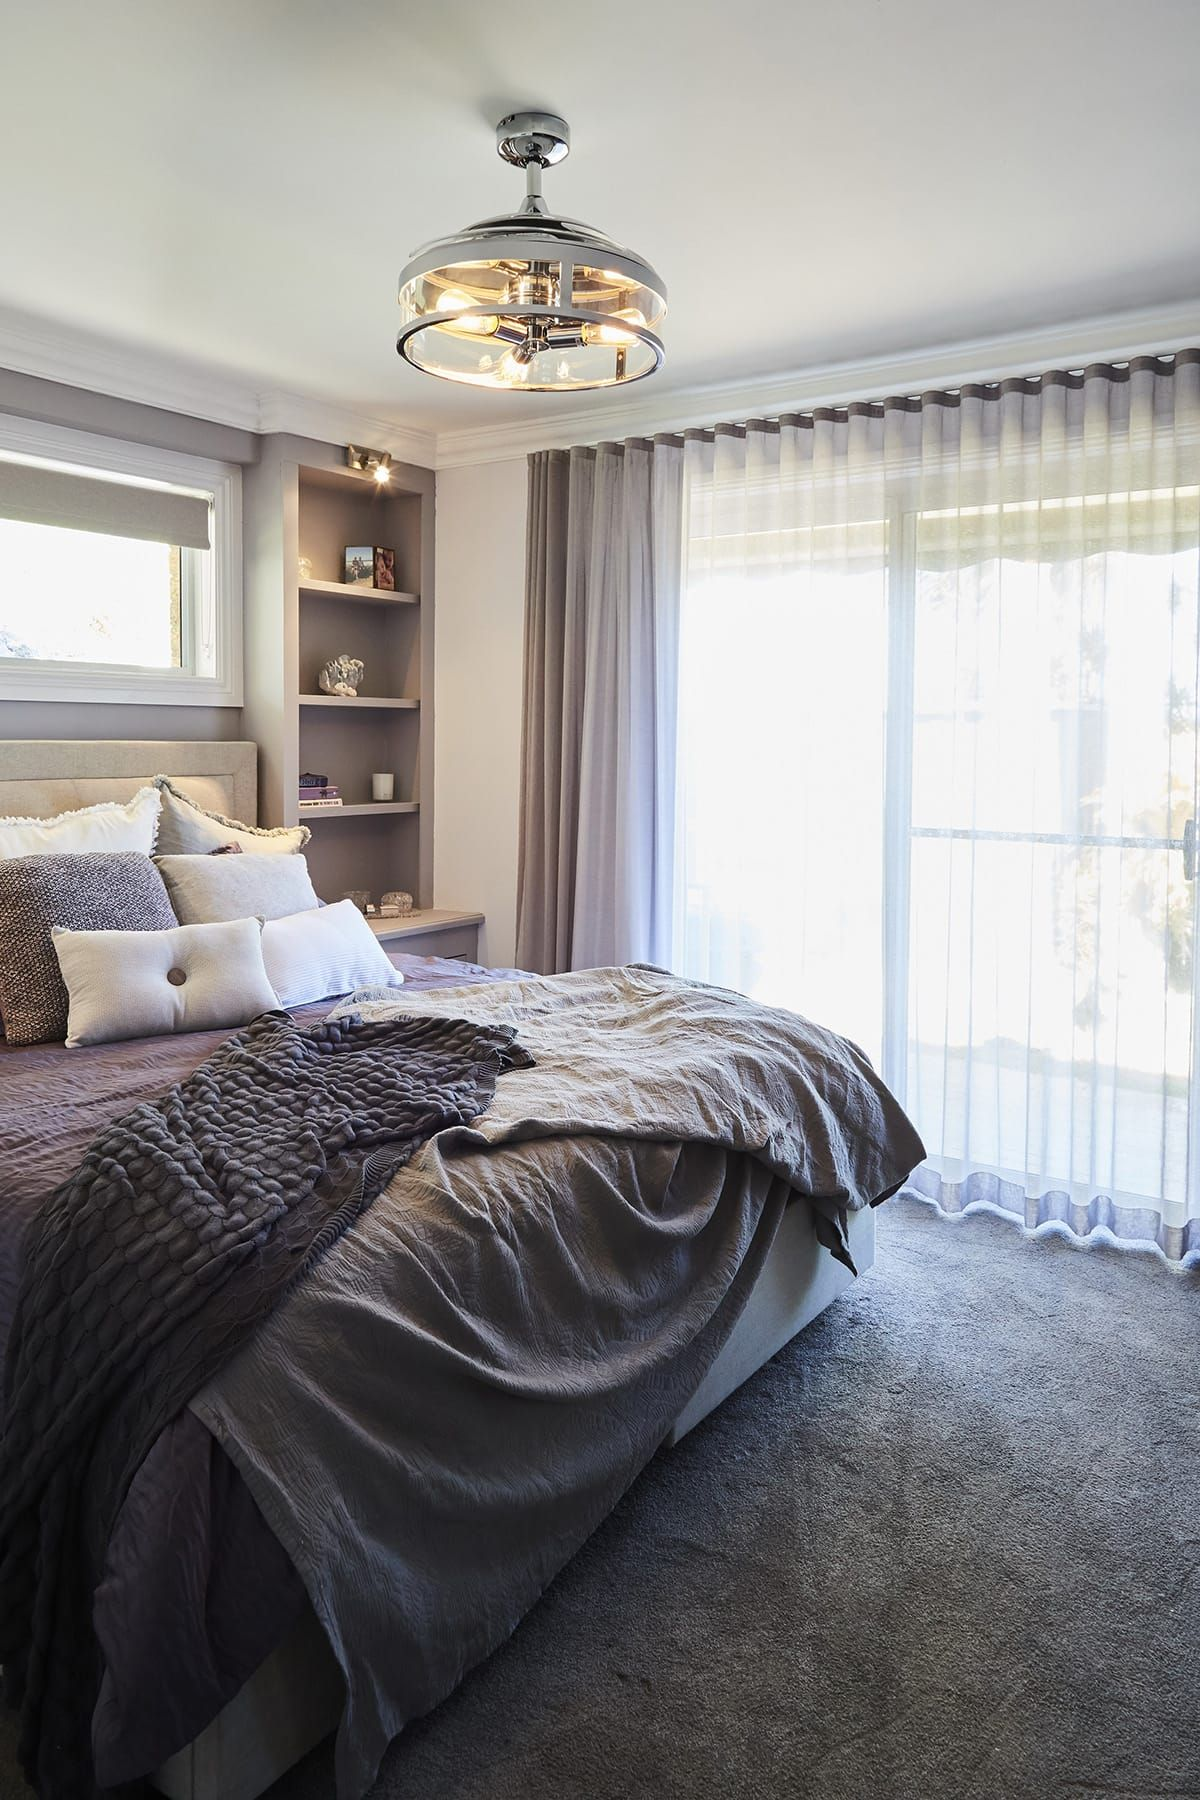 House Rules reveals new contender for Worst Room Grey